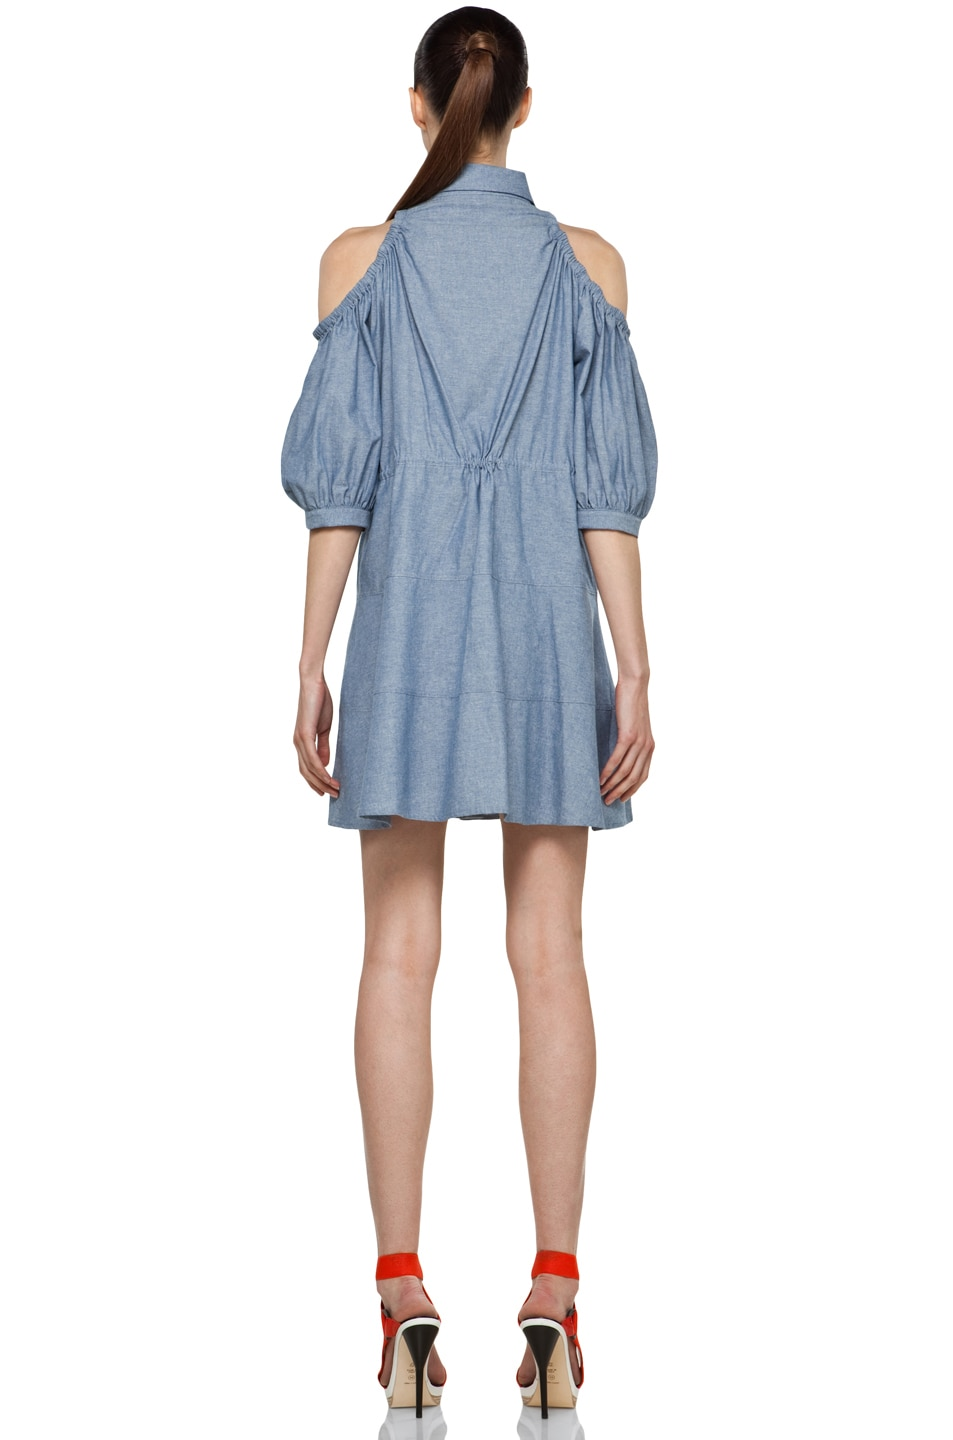 Image 4 of Chloe Sevigny for Opening Ceremony Cut Out Shoulder Blouse Dress in Chambray Blue